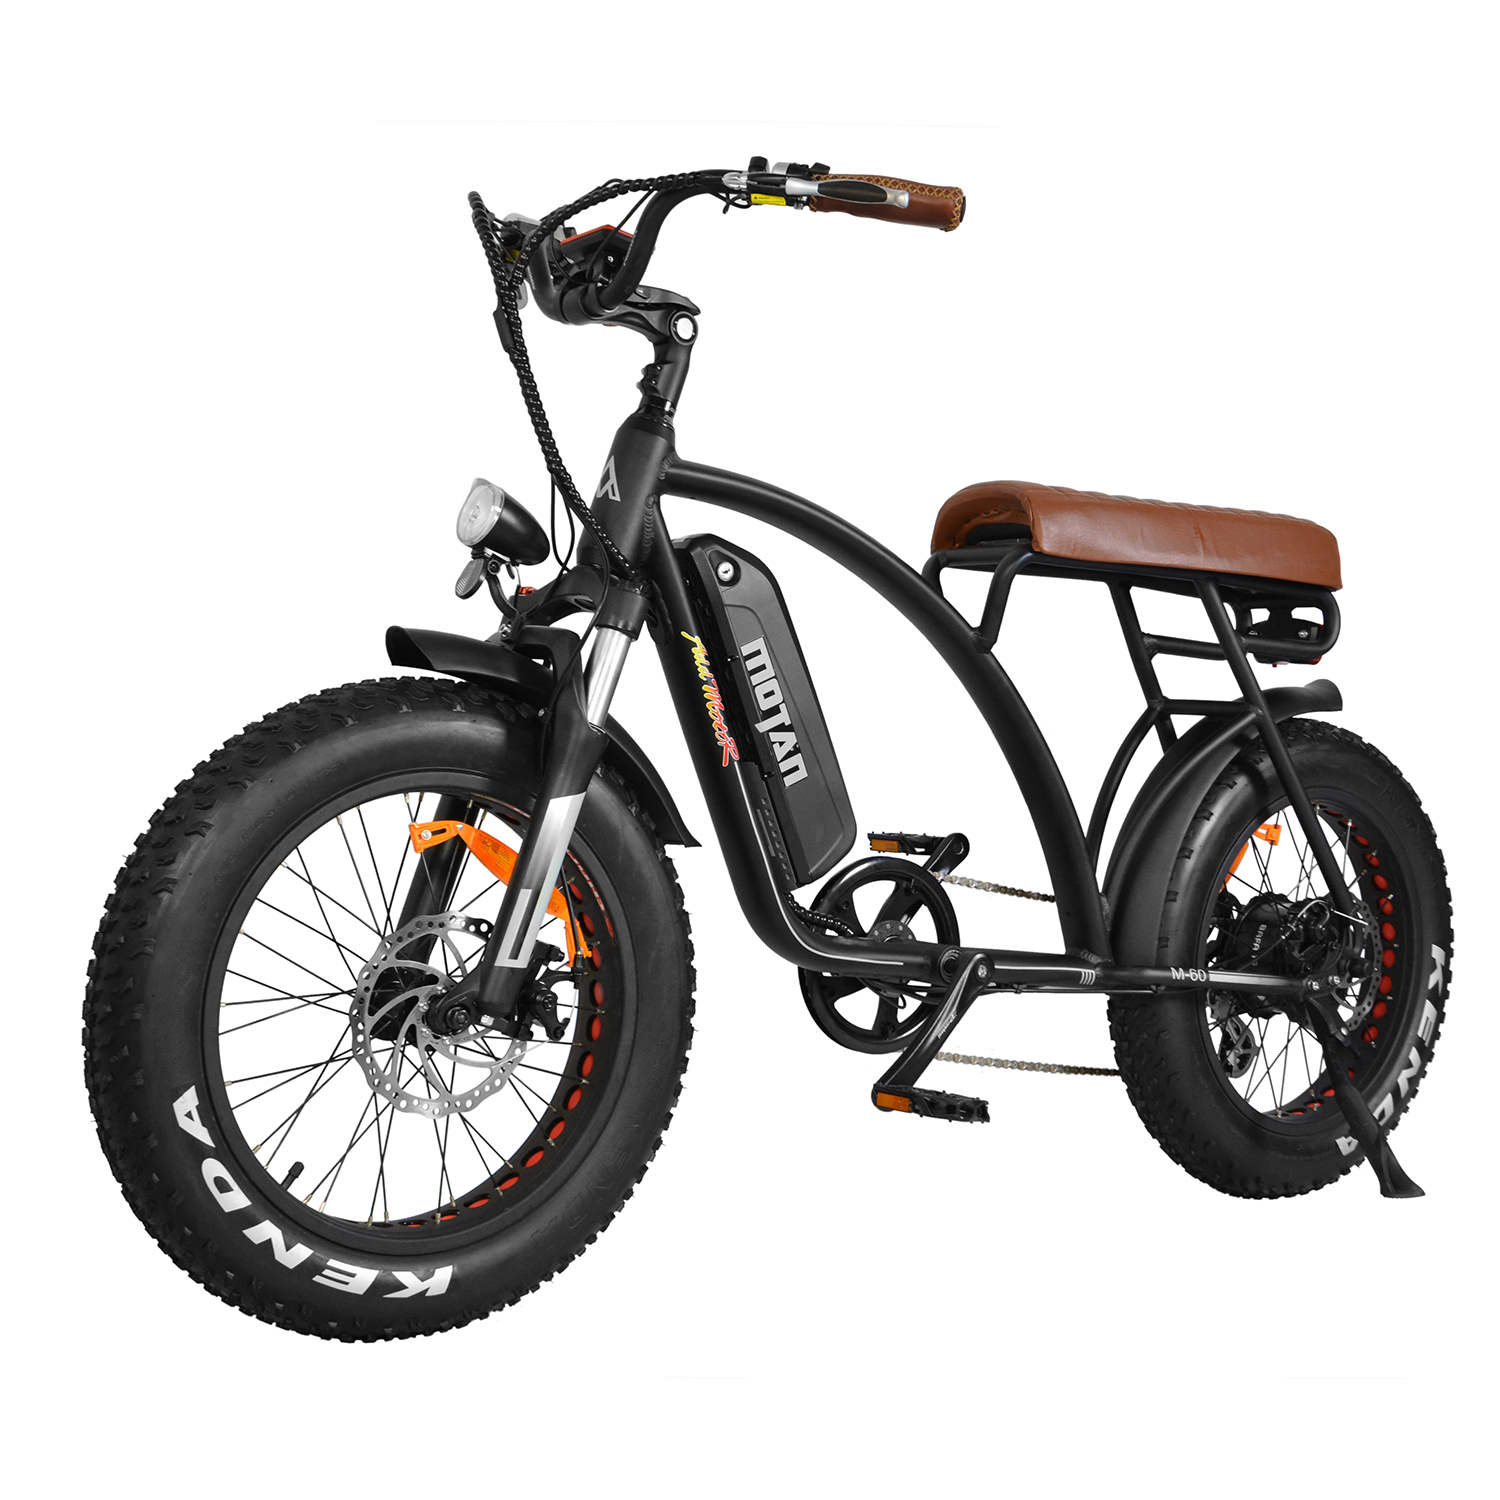 Addmotor MOTAN Electric Bike Bicycles 48V 500W Comfortable Bike 10.4AH 20'' Fat Tire E-Bike M-60 Deluxe Saddle Snow Bike